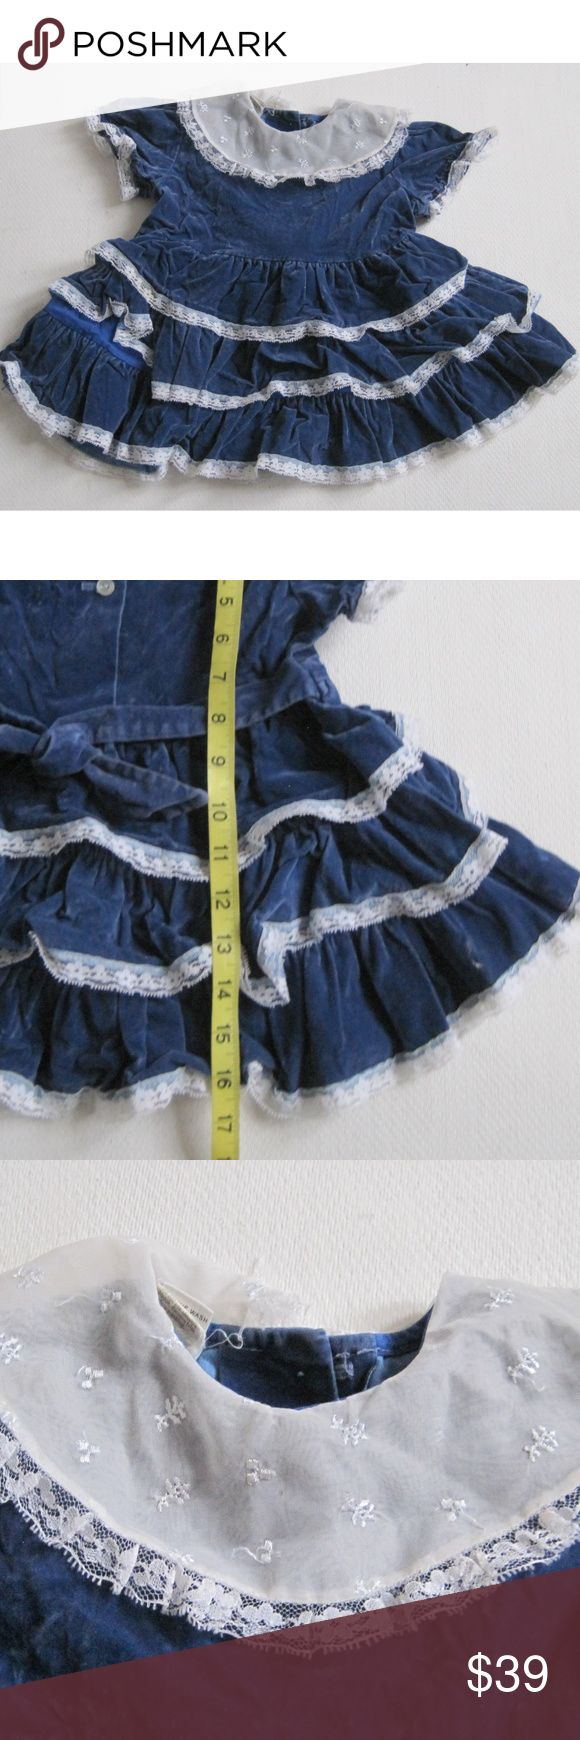 SEARS Vintage Girl Dress Sz 4T Blue Velour Tiered Vintage SEARS Baby Girl Dress   Size: 4T  Condition: very good vintage  A3220BabyzkEE Sears Dresses Formal